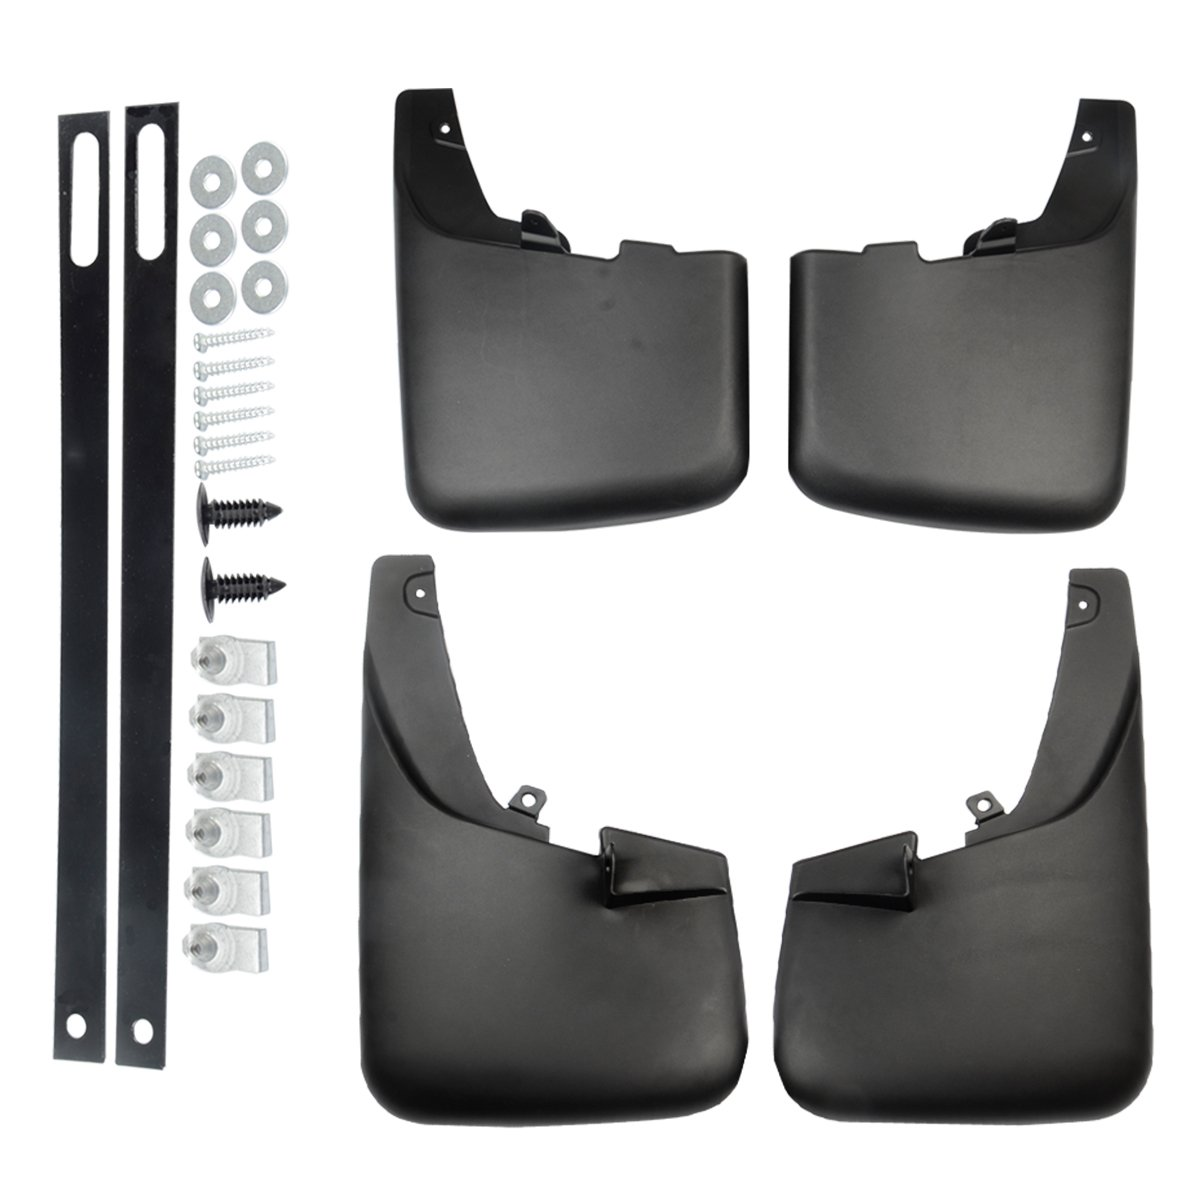 A-Premium Splash Guards Mud Flaps Mudflaps for Ford F-250 F-350 Super Duty 2011-2016 with Factory Fender Flares 4-PC Set